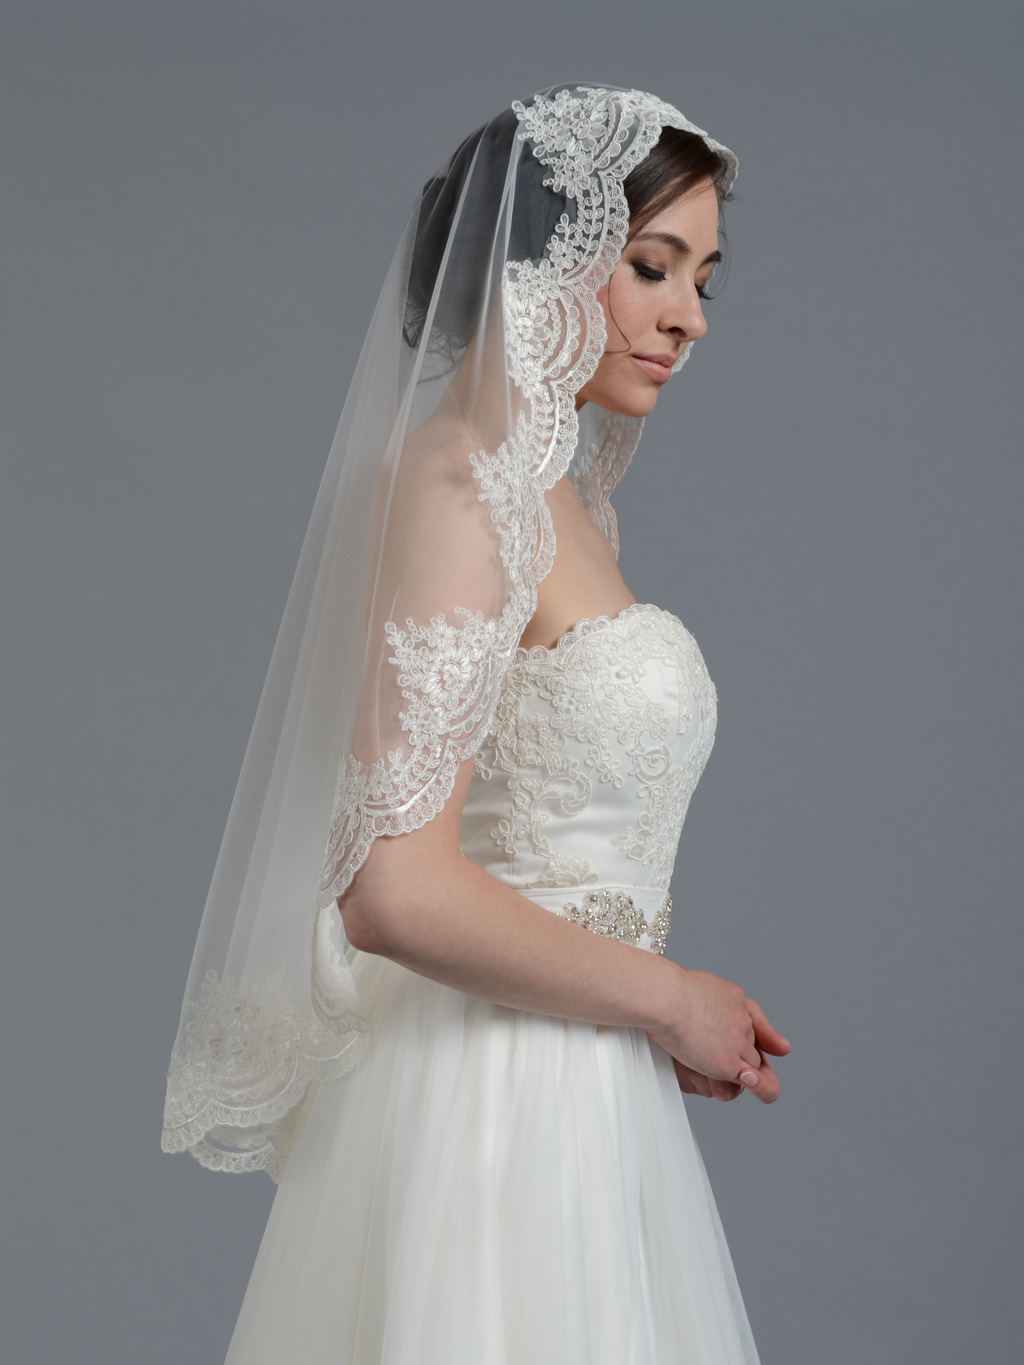 Desgin My Home Mantilla Bridal Wedding Veil Elbow Fingertip V030